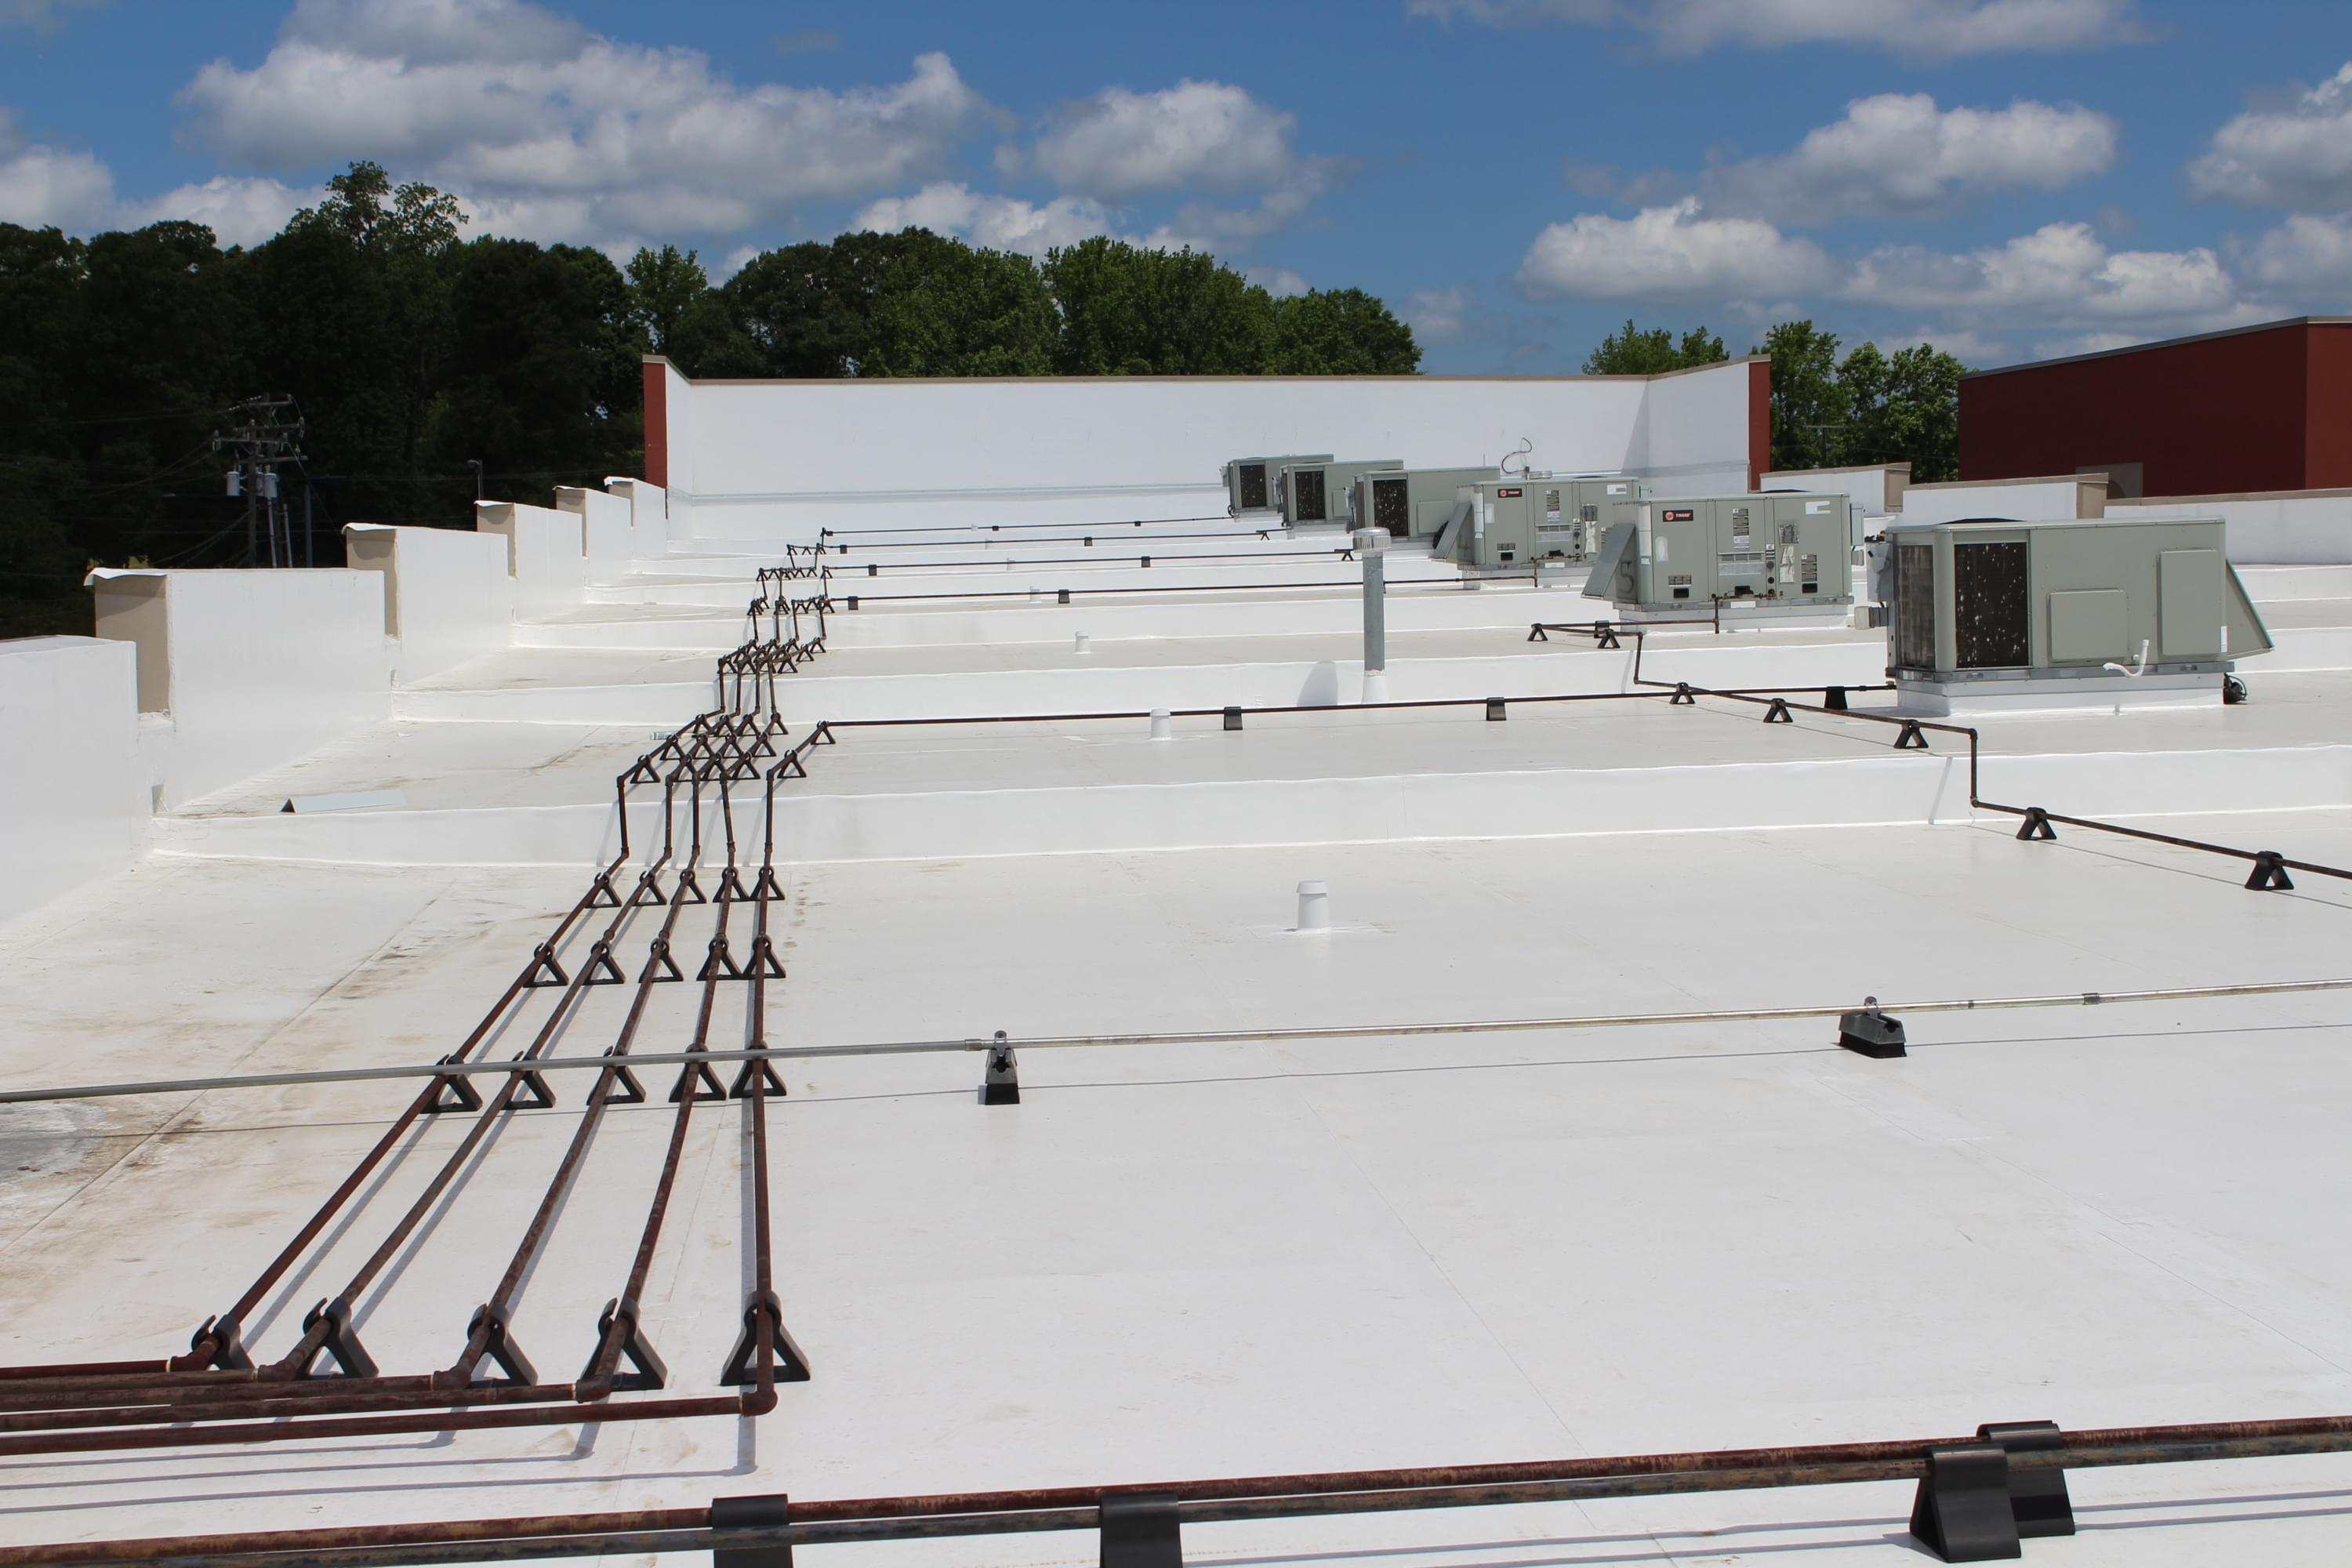 Commercial Roofing, TPO Roof, North Carolina